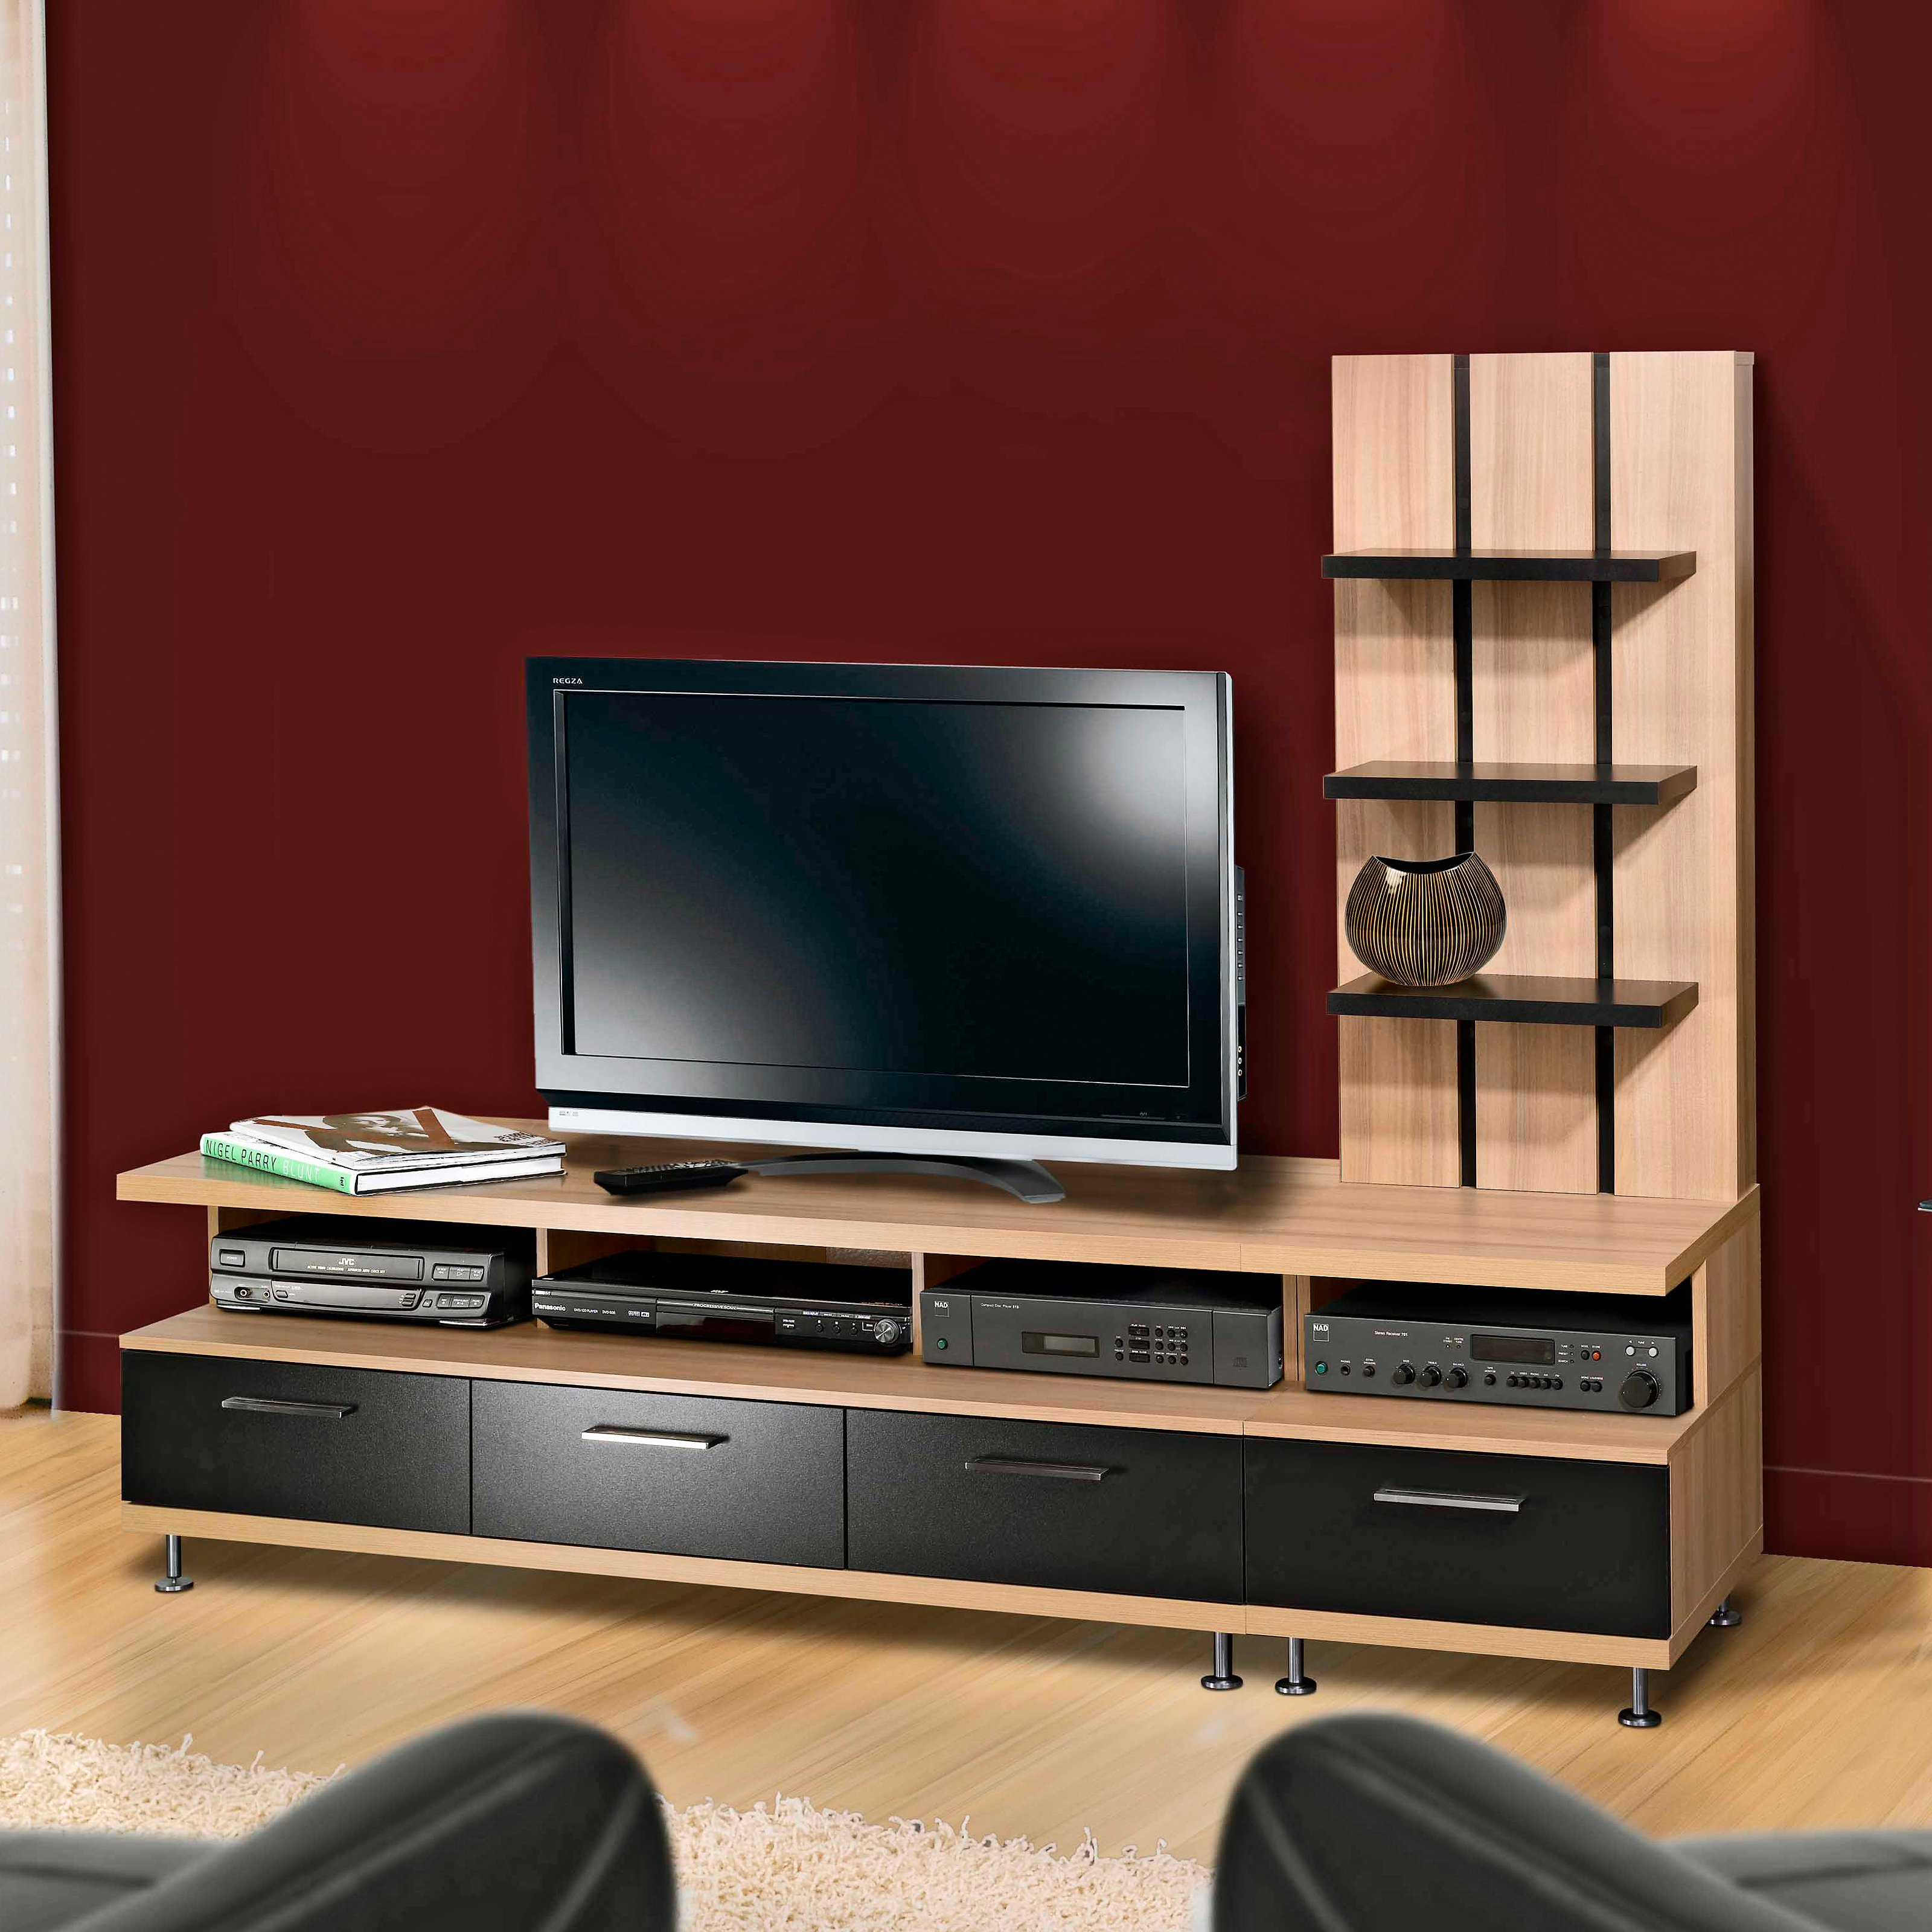 Best Contemporary Tv Console For Flat Screens — All Contemporary Design Intended For Famous Contemporary Tv Cabinets For Flat Screens (Gallery 2 of 20)